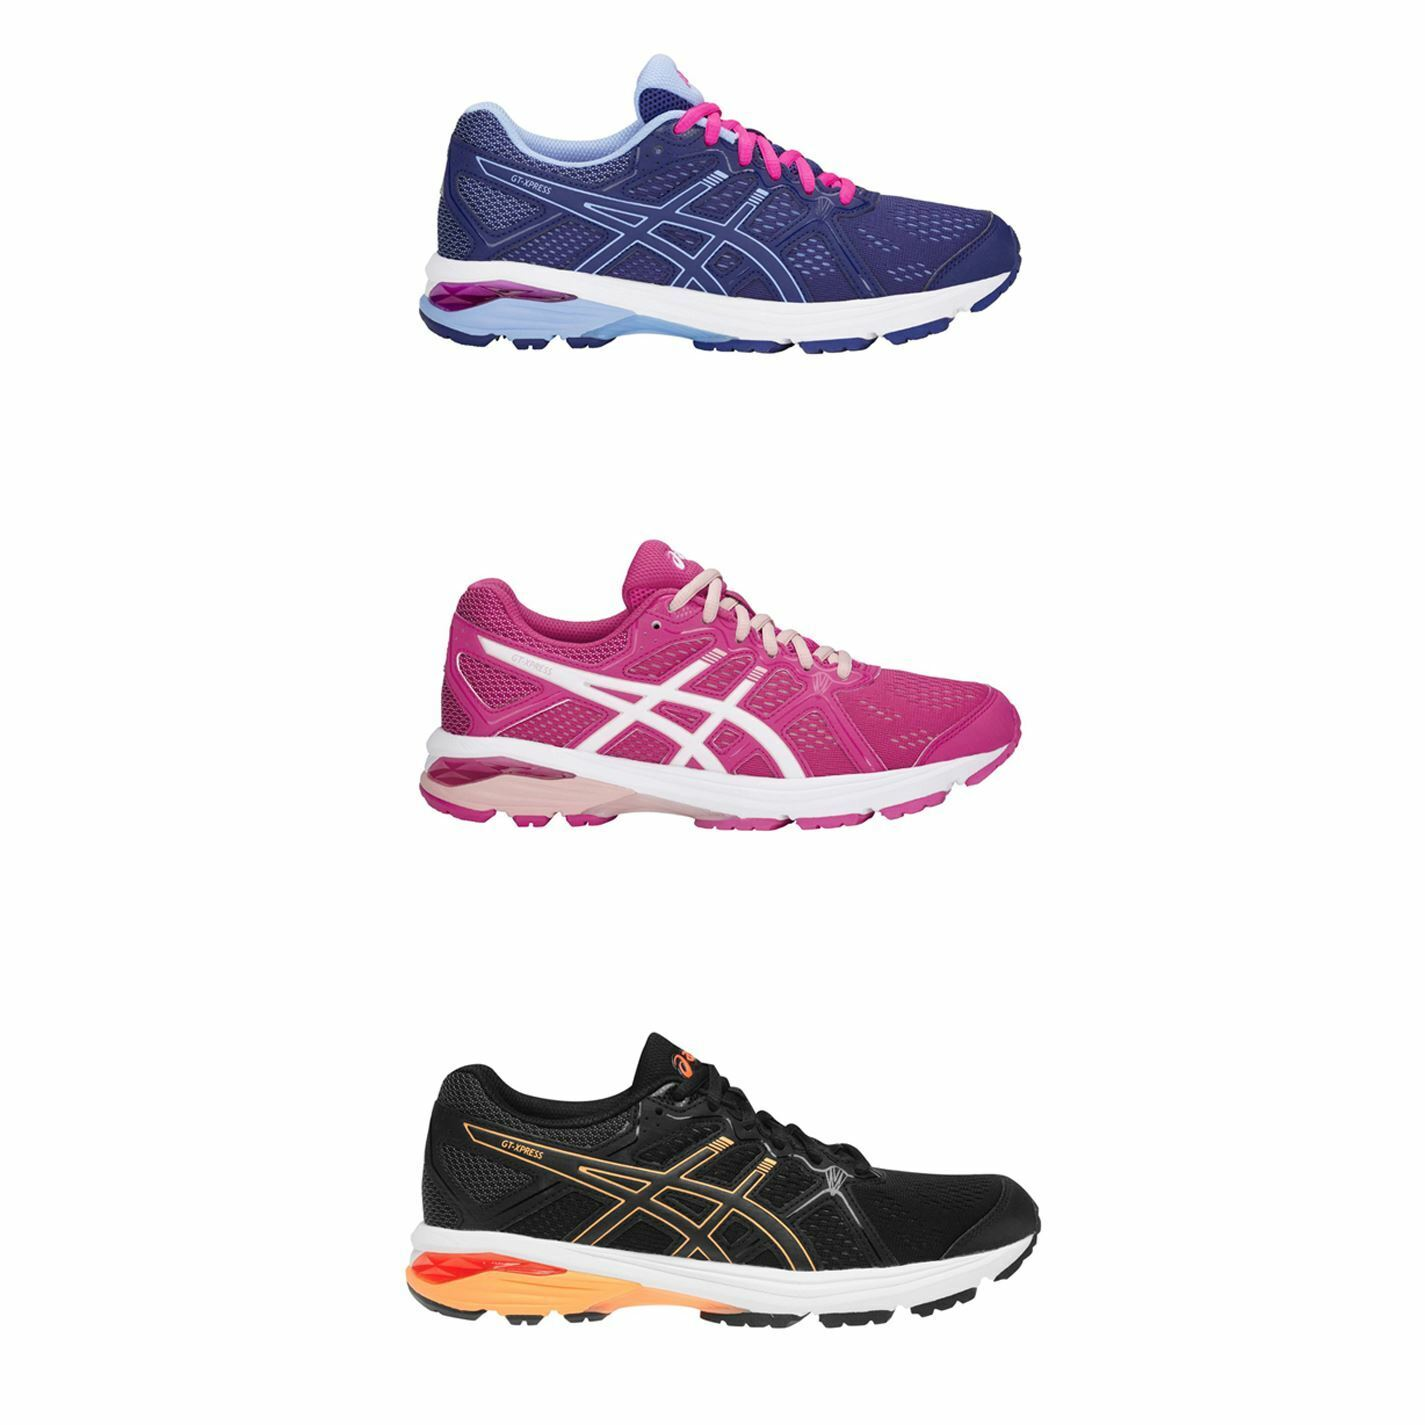 Asiacs GT Xpress Laufen schuhe daSie Jogging Trainer Turnschuhe Fitness